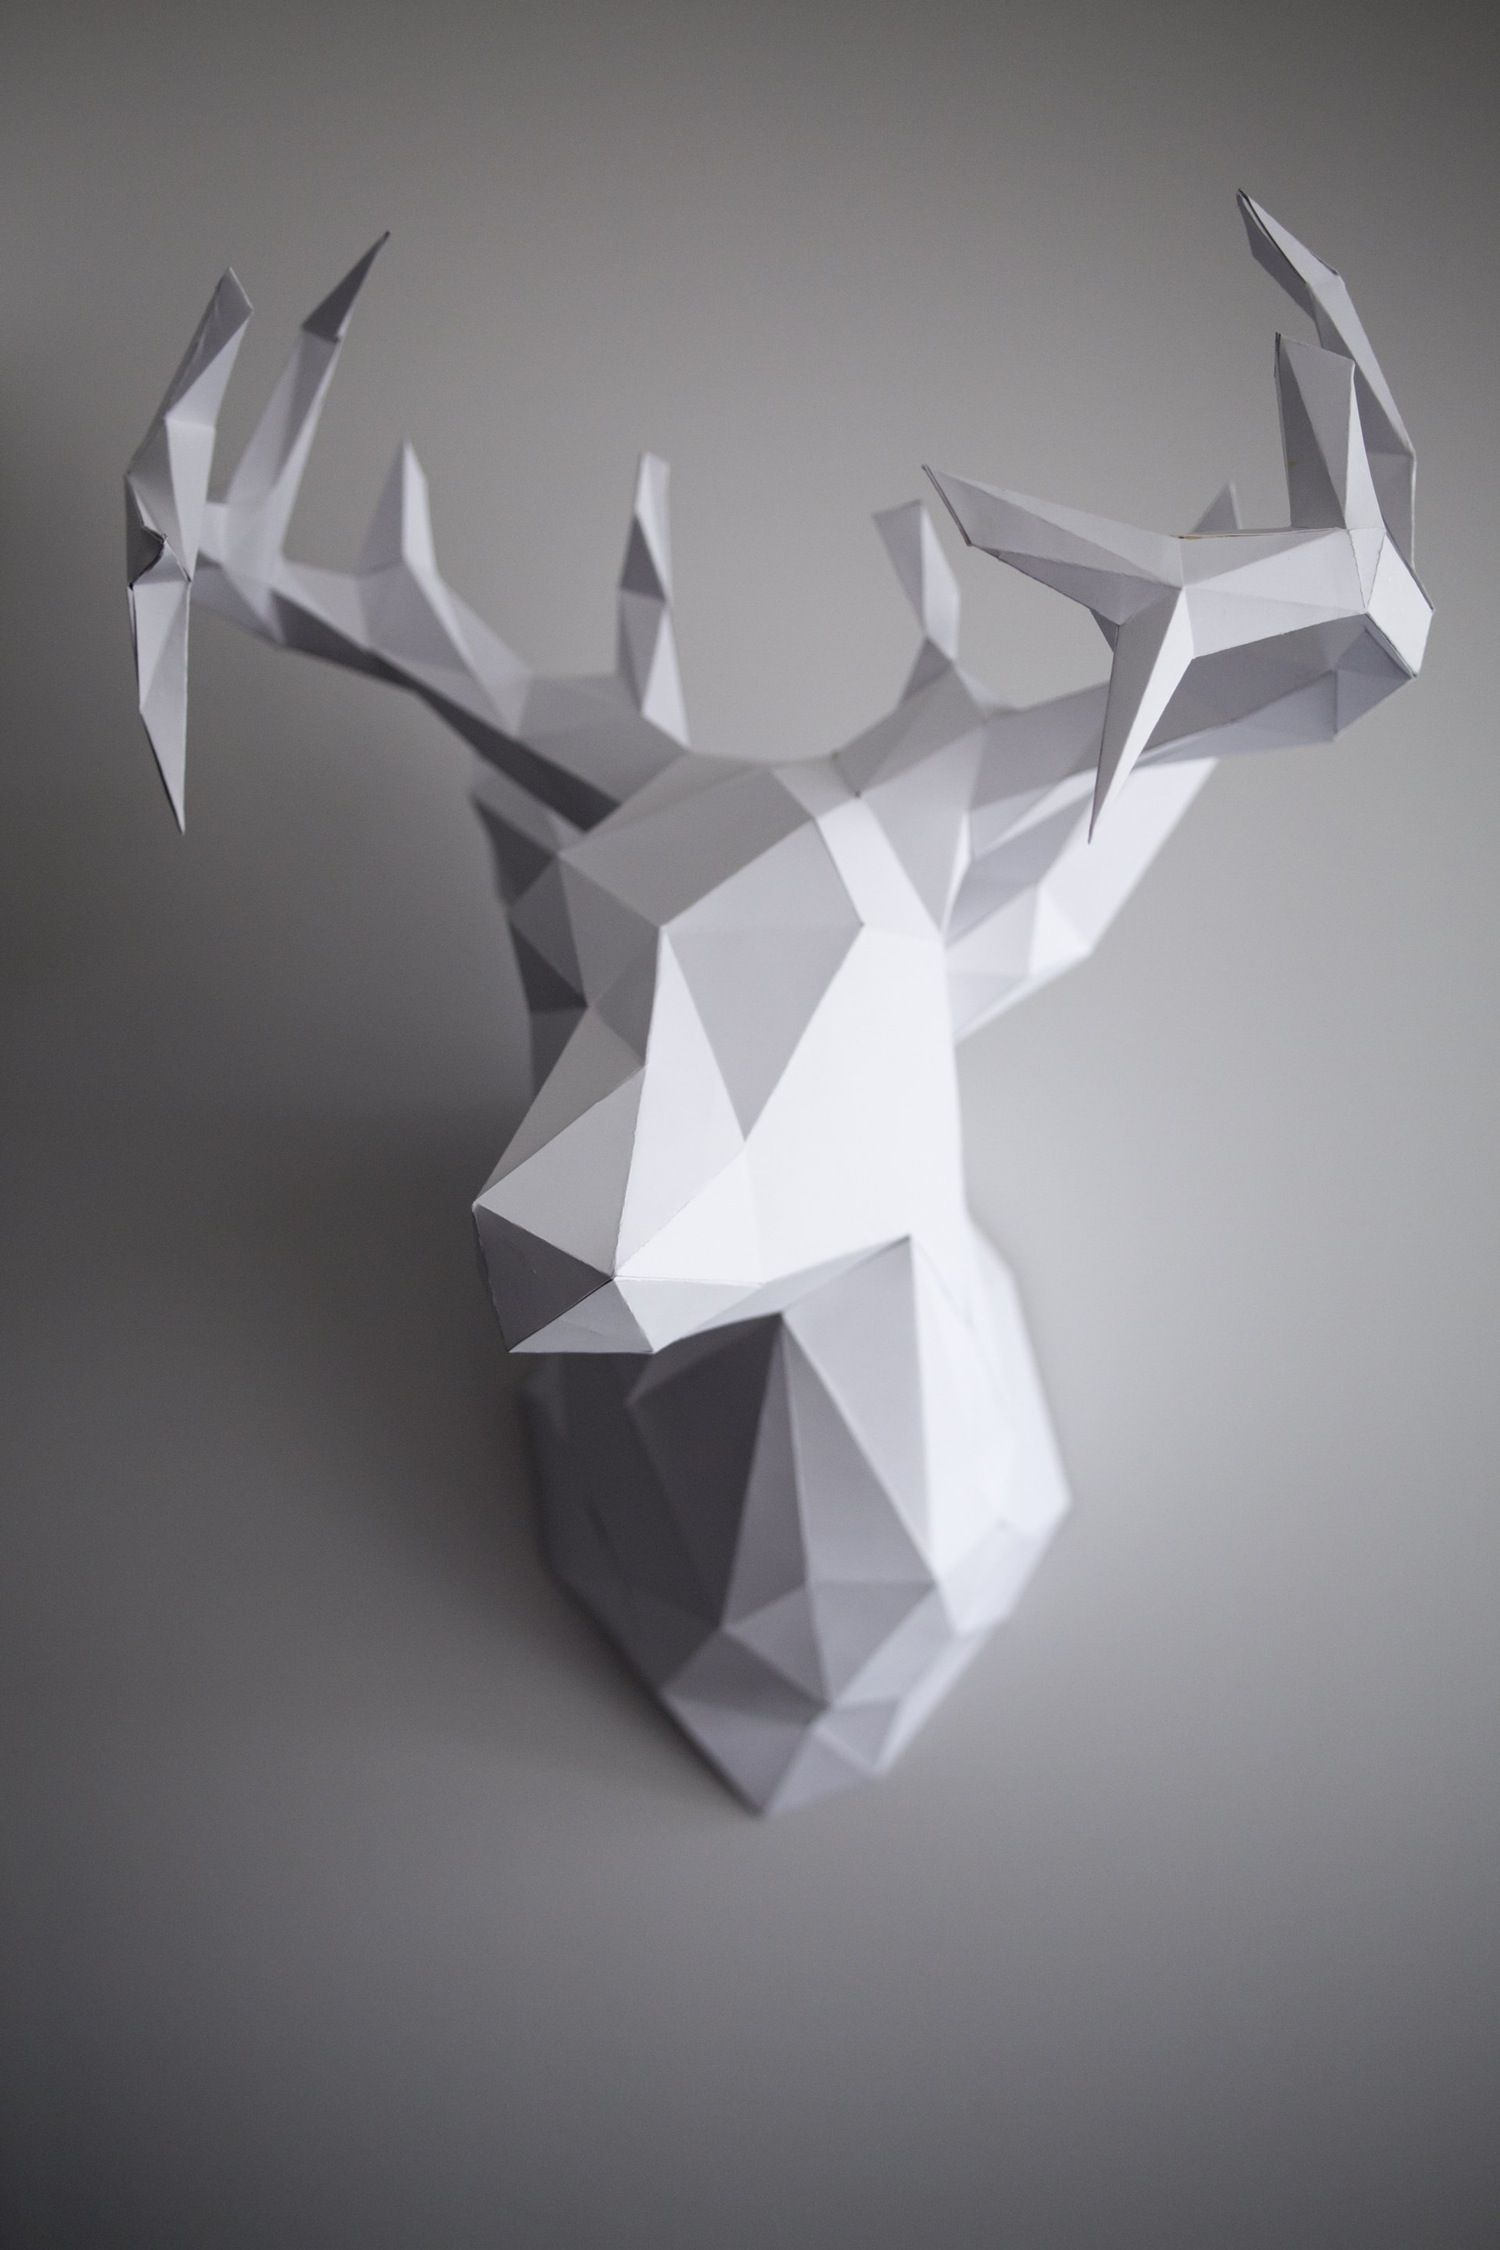 If you're looking for a non traditional holiday DIY (that you could totally leave up year round), look no further than this stunning paper reindeer. It should take you about 3 days (on and off) and come in under $30, so get cutting!